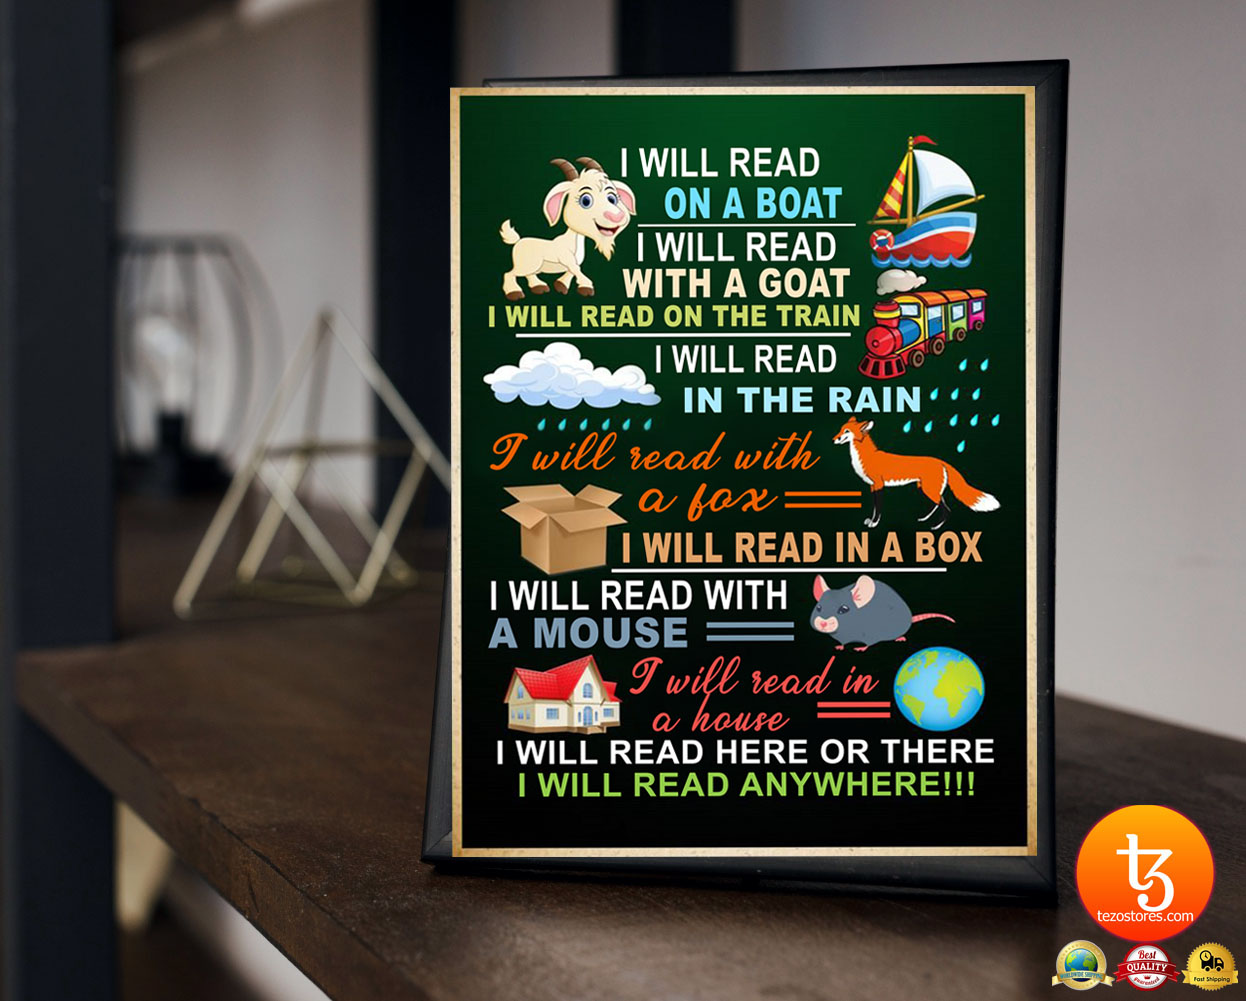 I will read on the boat I will read with the goat in the rain with the fox poster